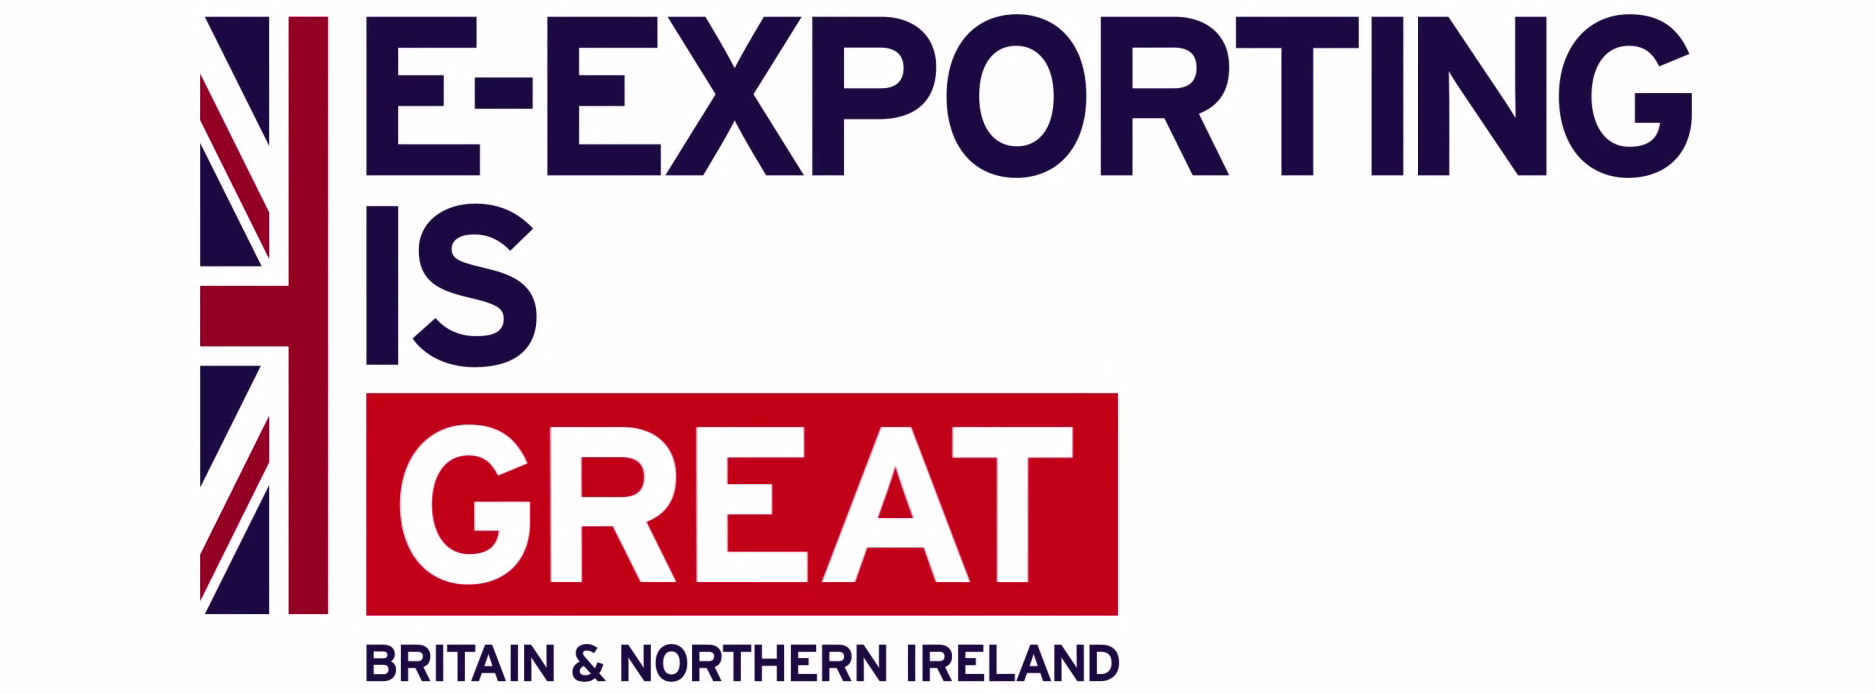 How small businesses can cut the costs of exporting